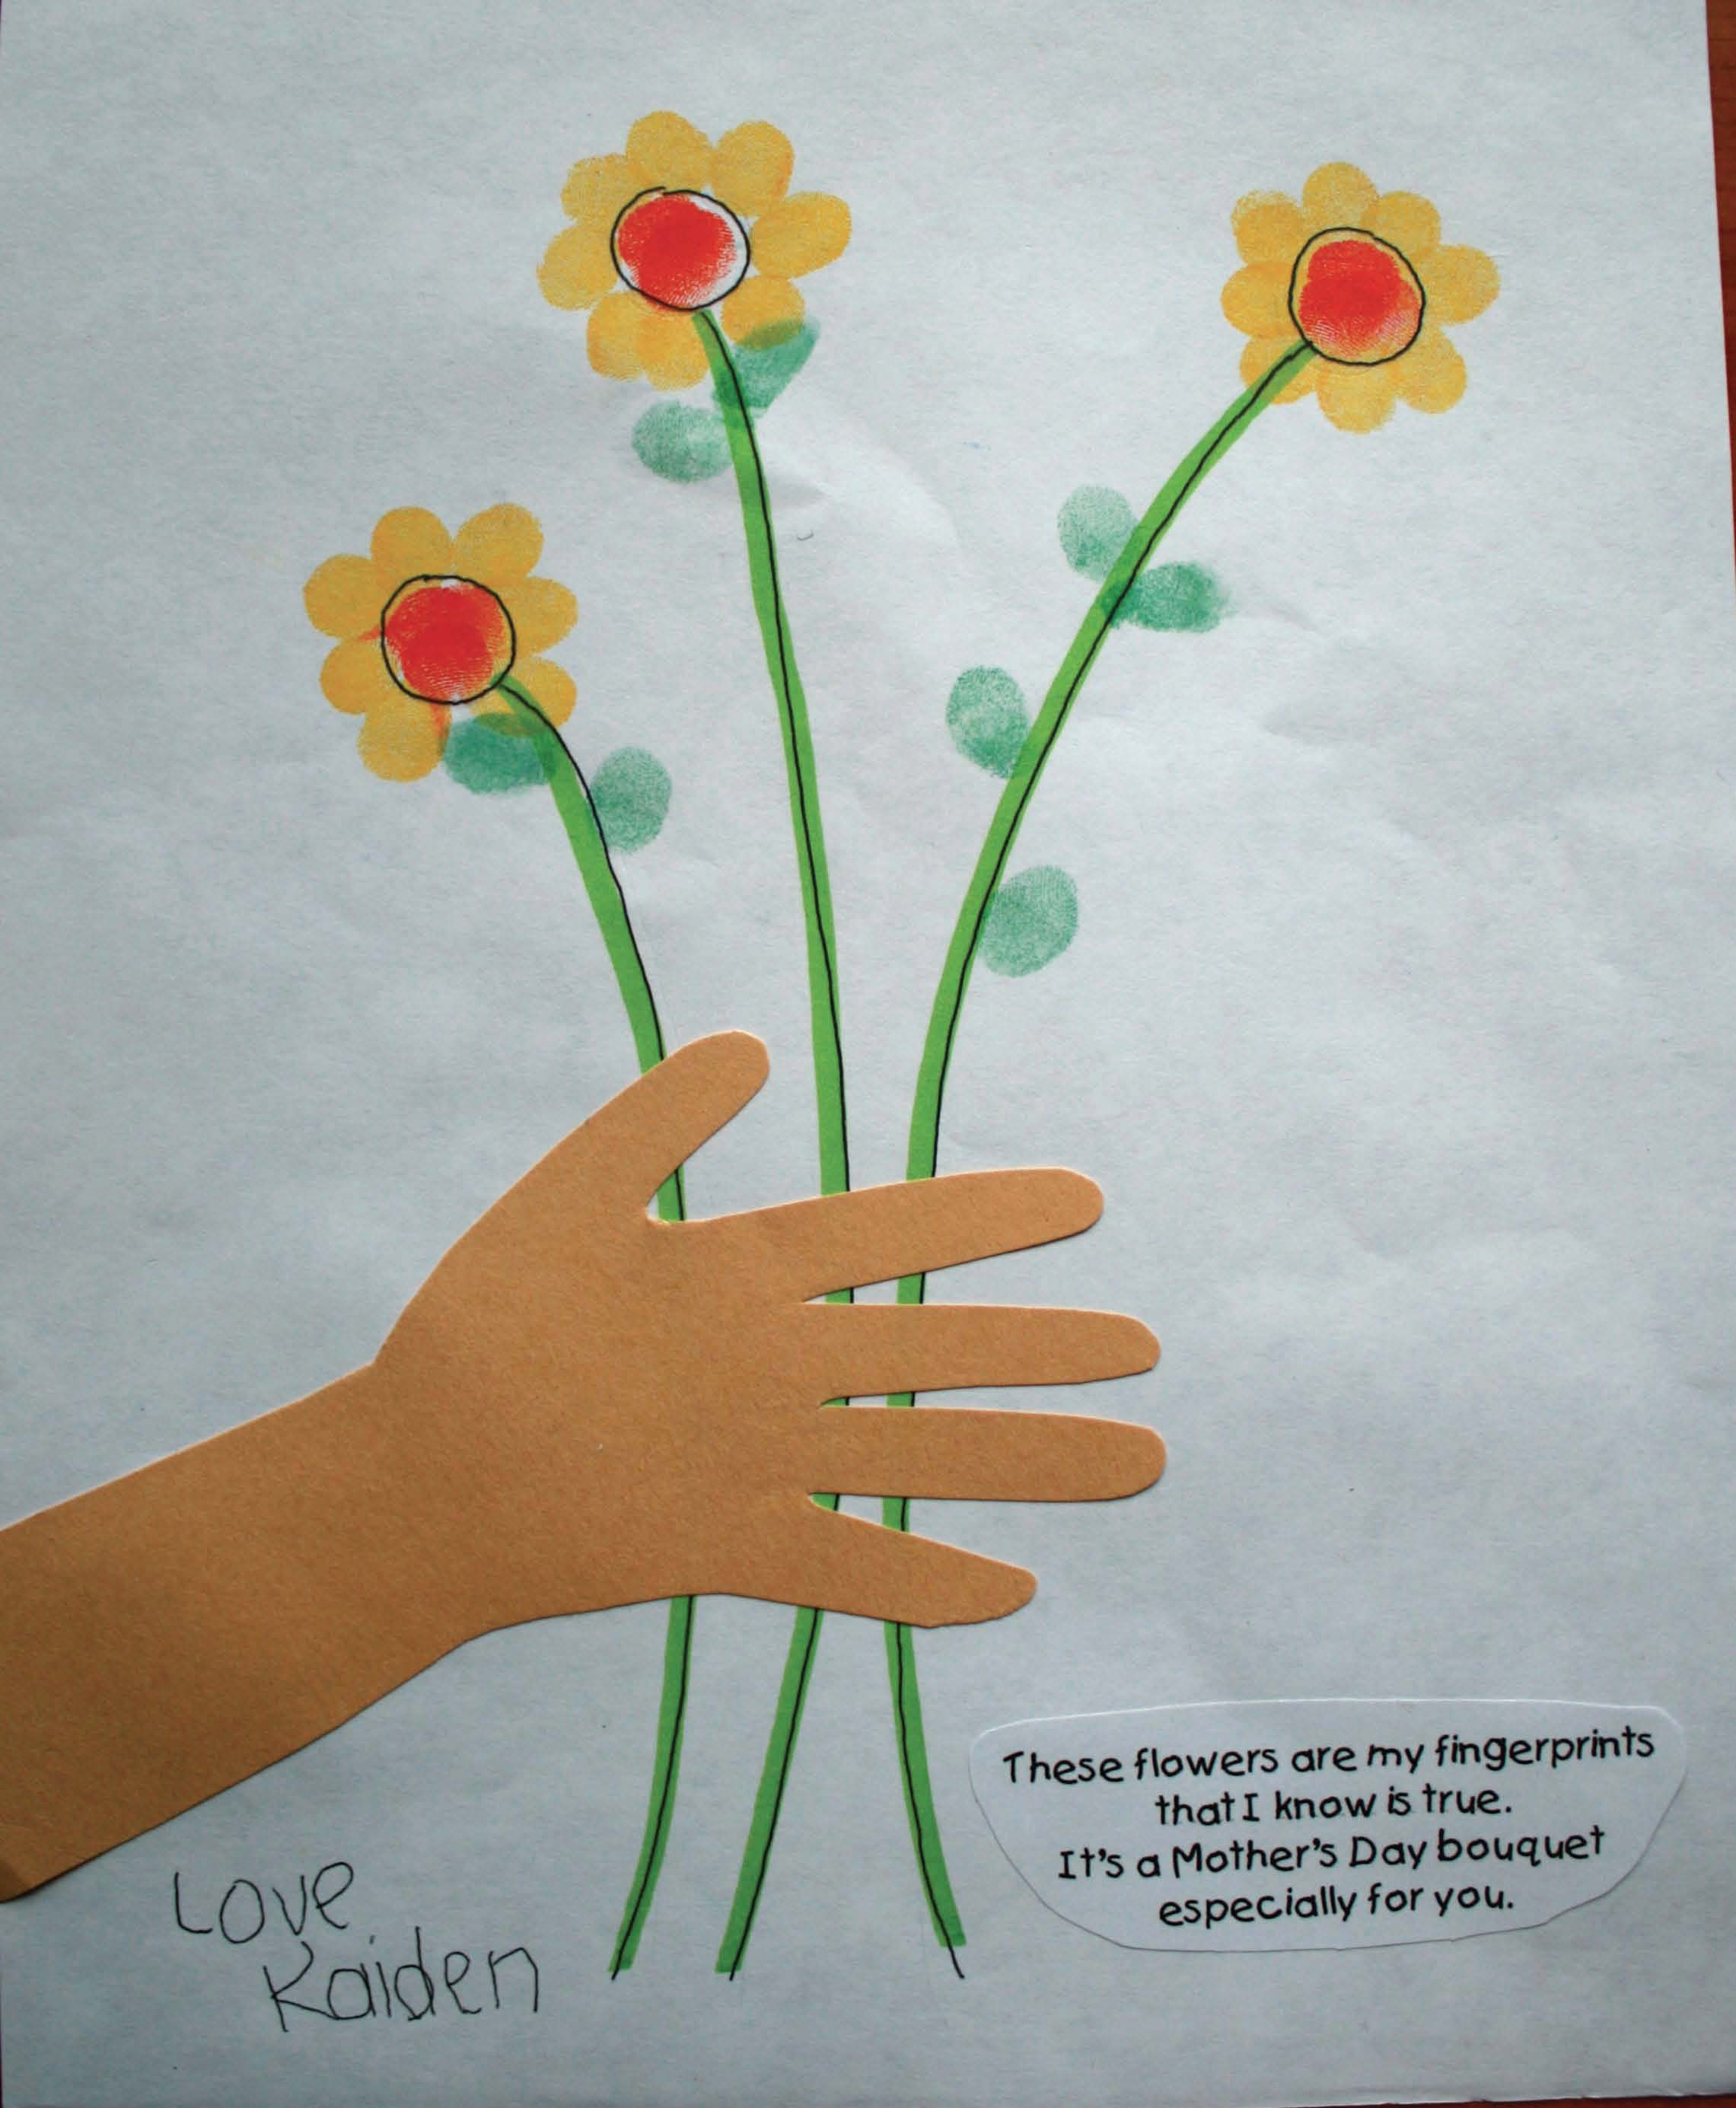 mothers day activities, mothers day crafts, mothers day cards, flower crafts